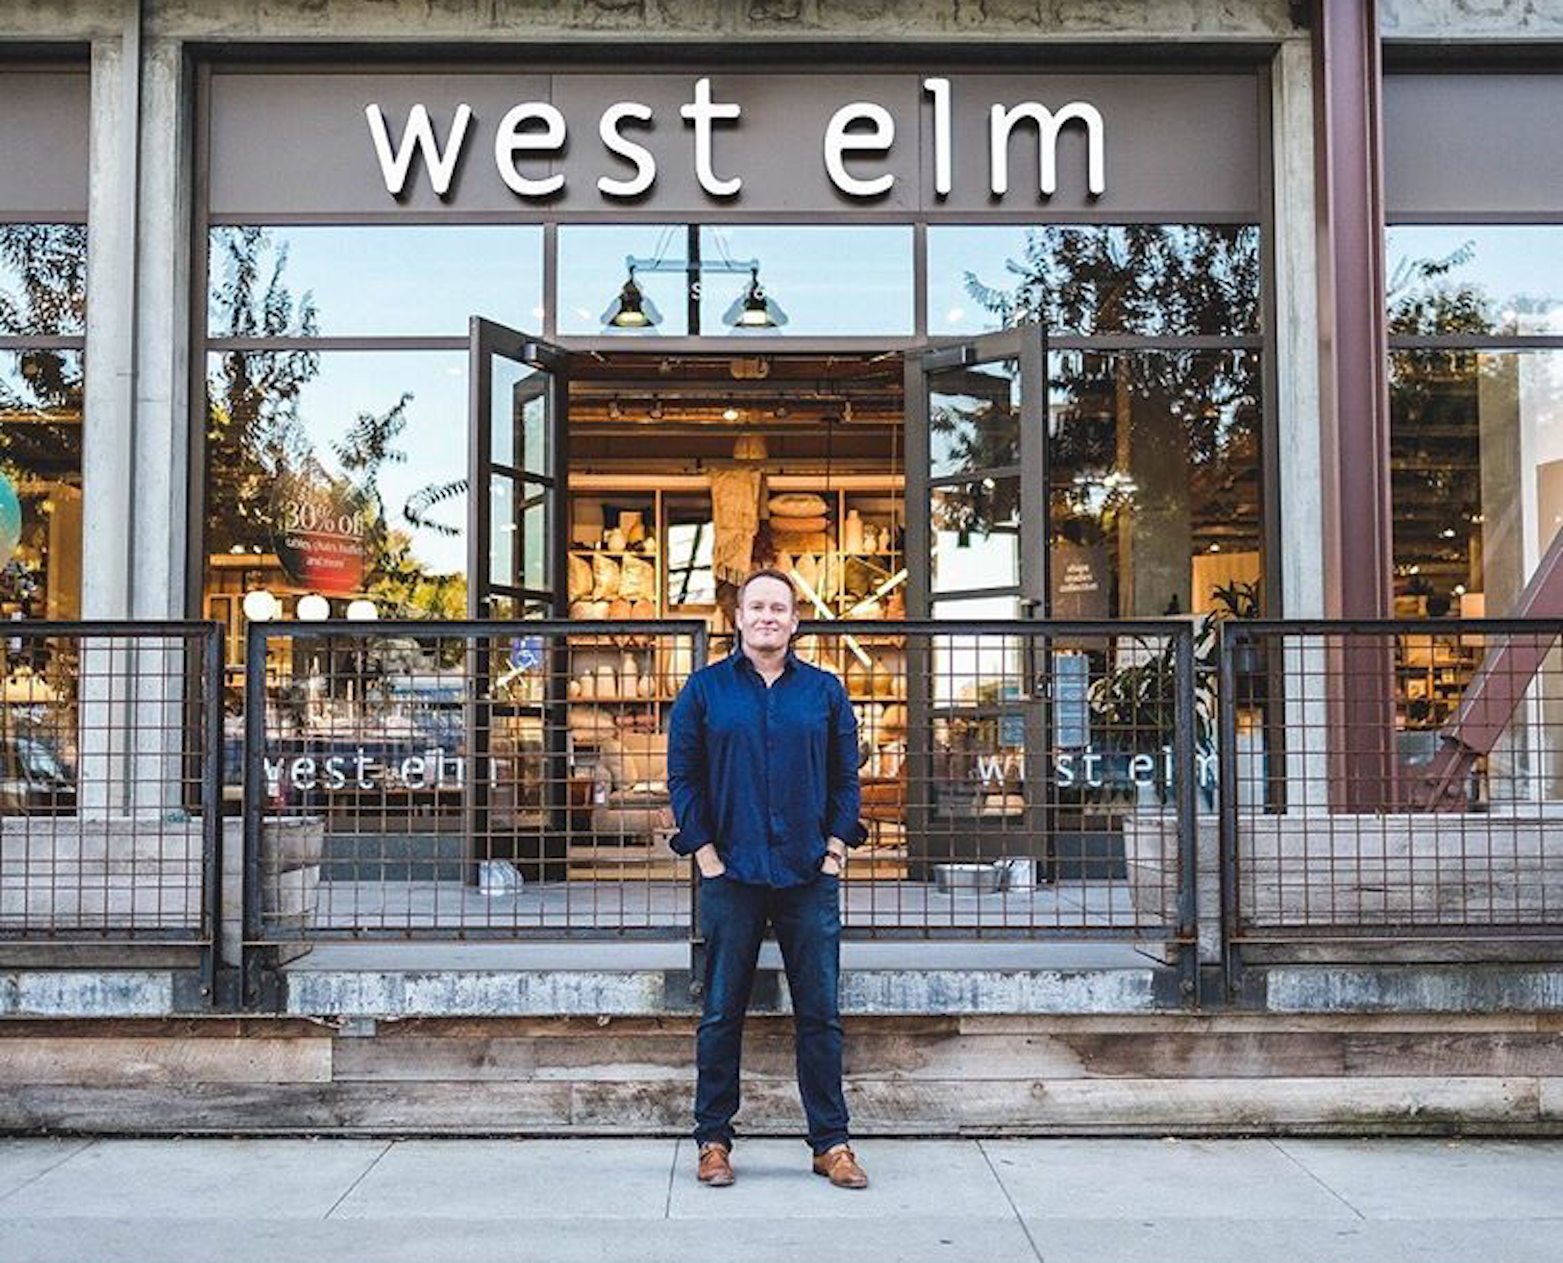 Now available at West Elm!